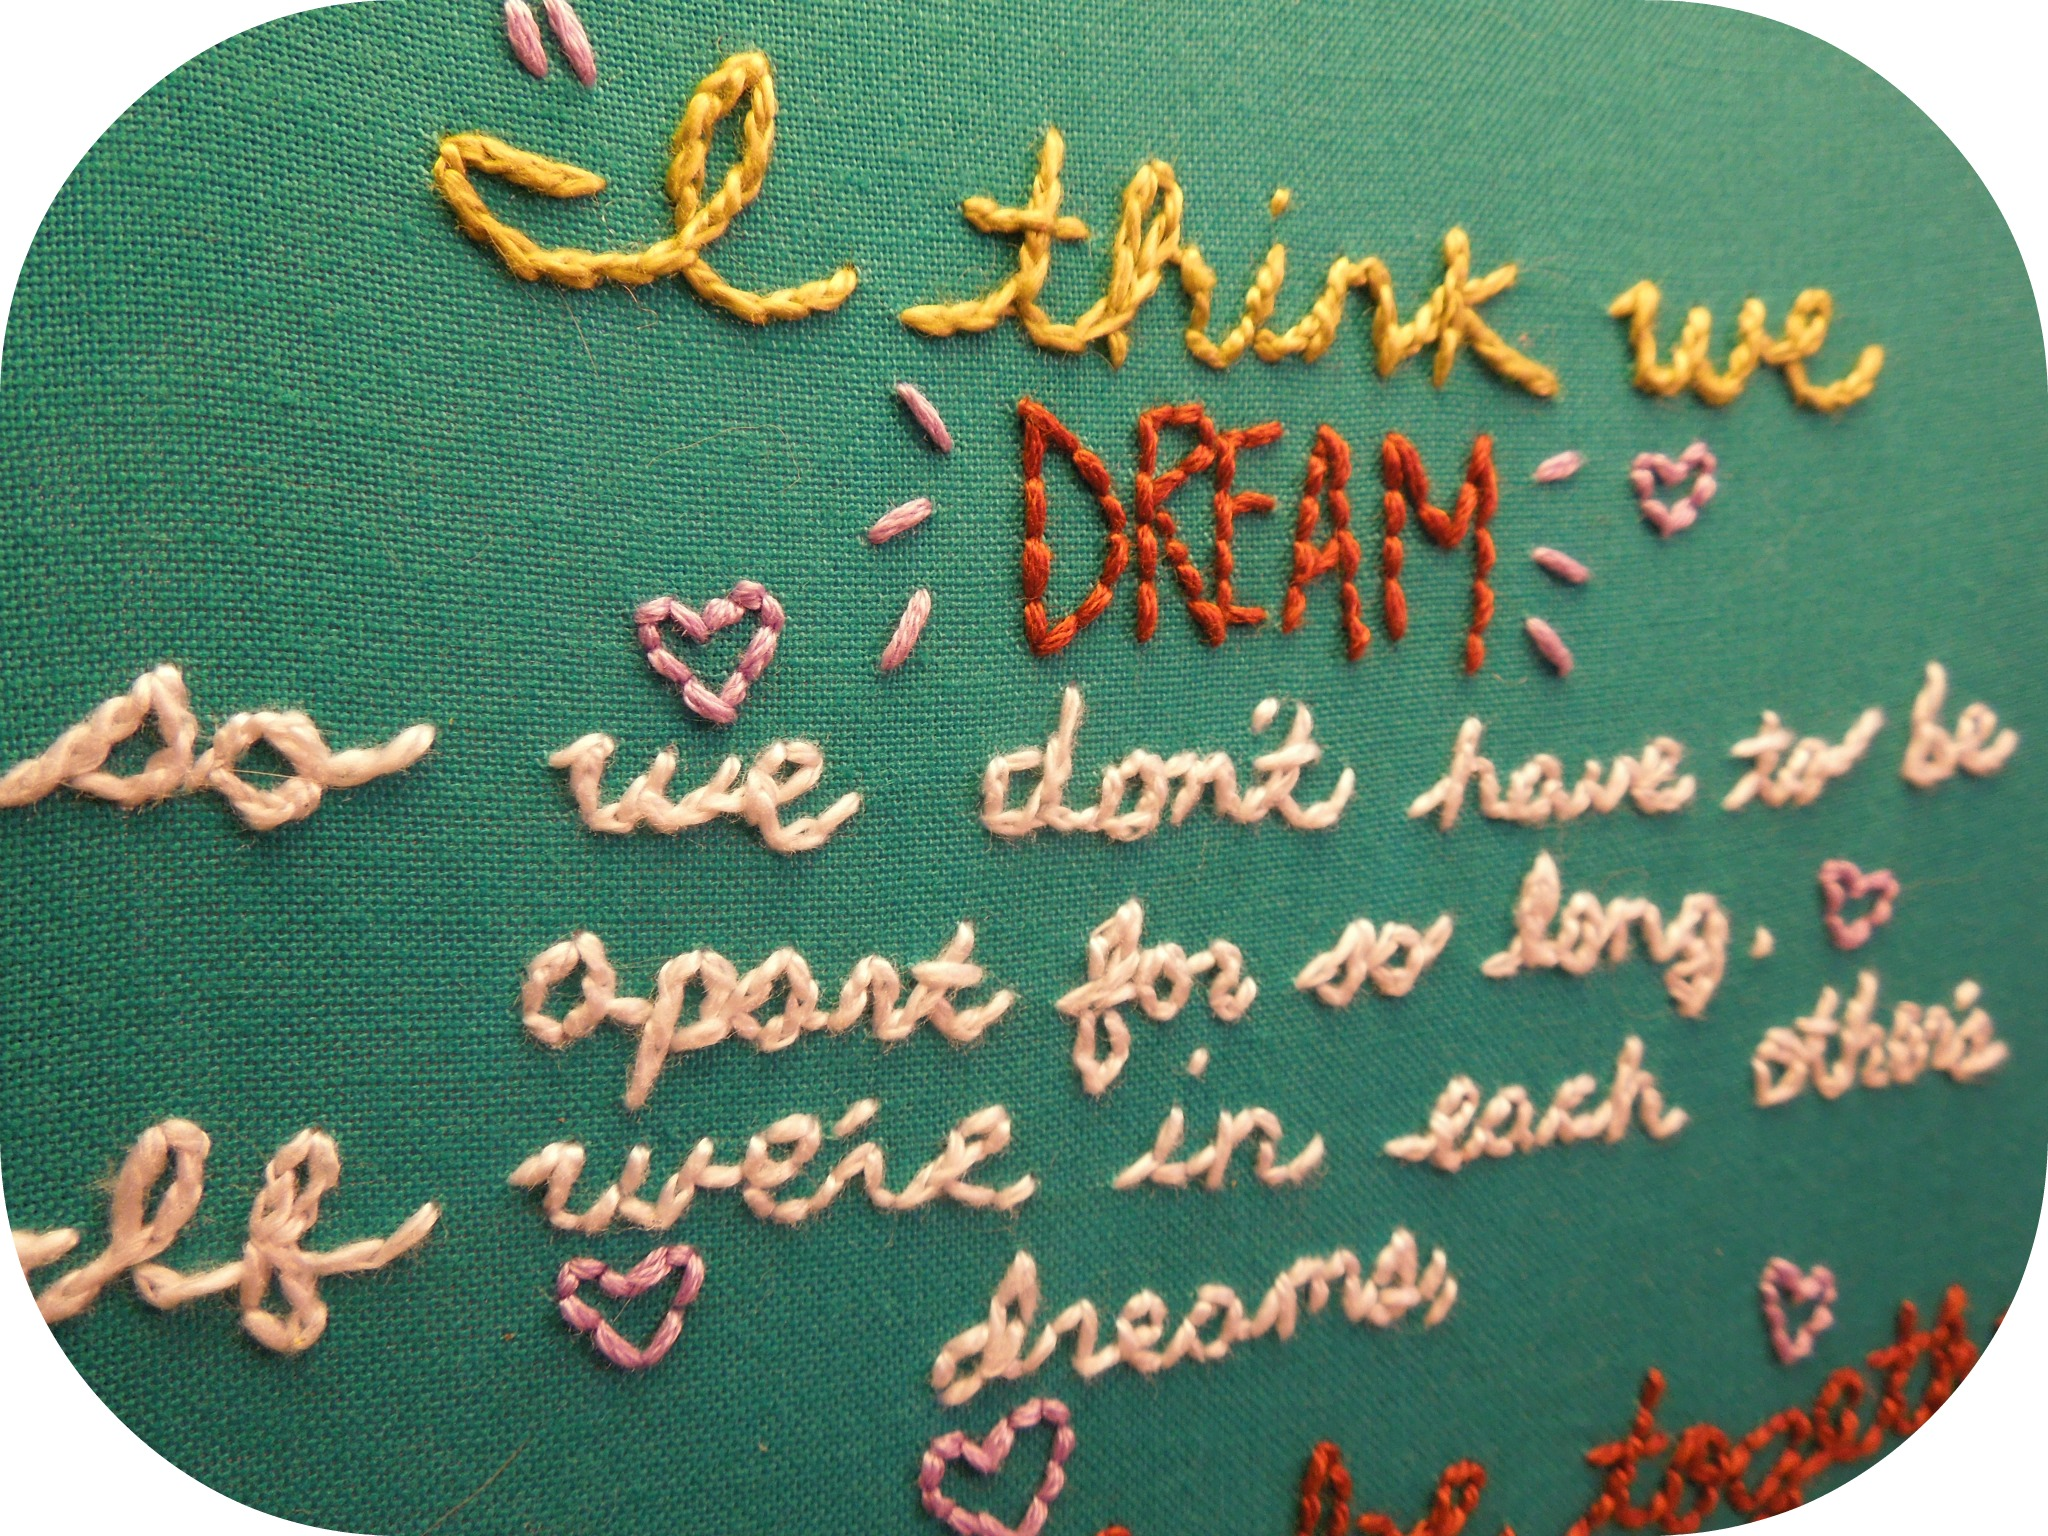 Winnie the pooh quote embroidery too crewel